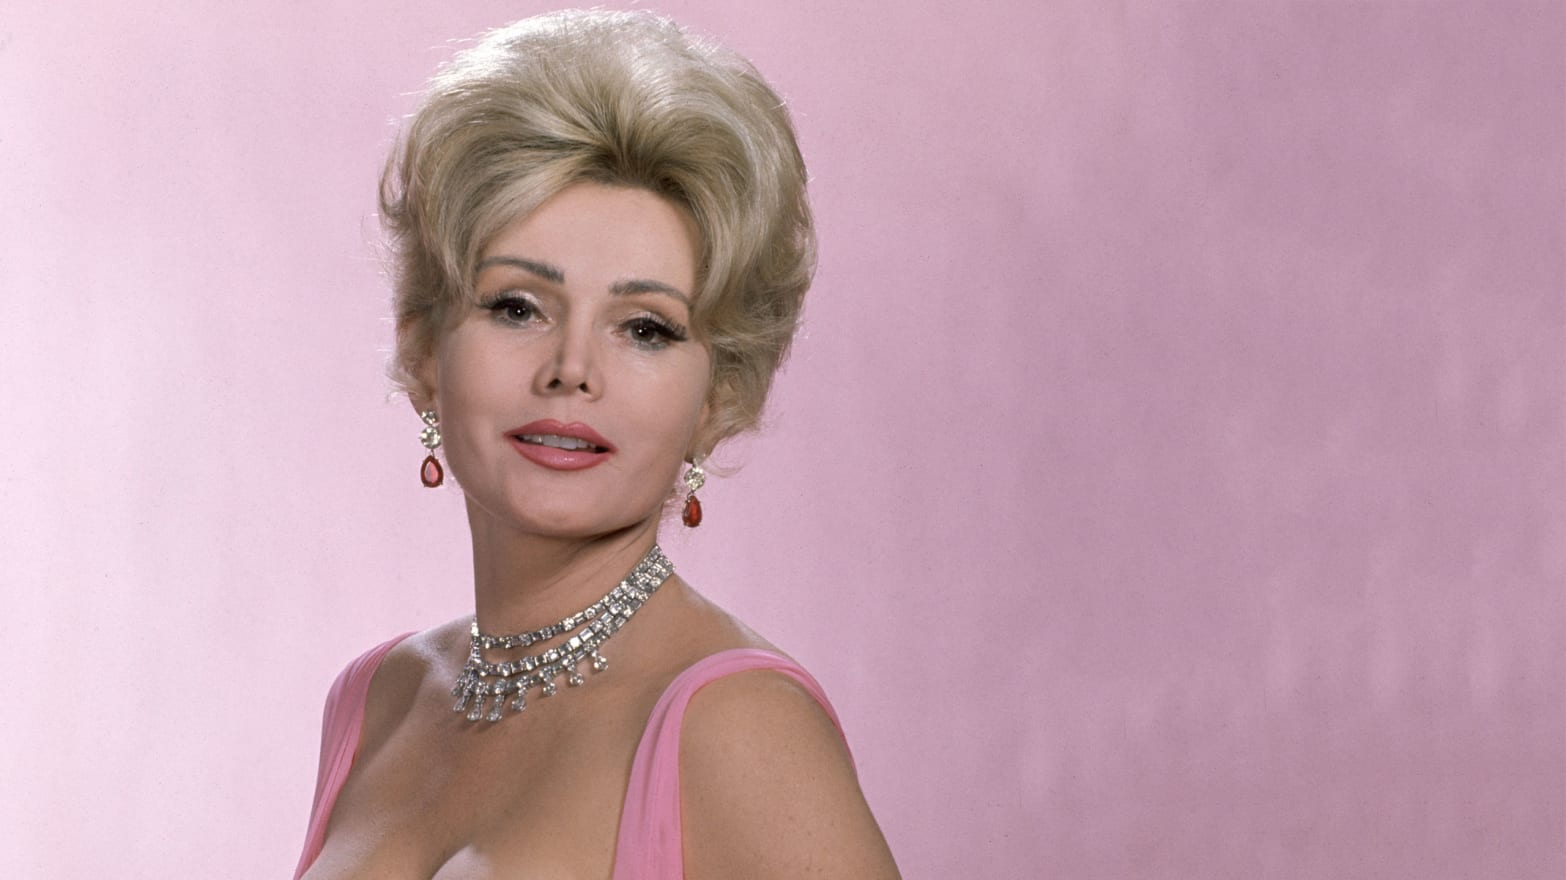 Zsa Zsa Gabors Fabulous Life The Kim Kardashian Of Her